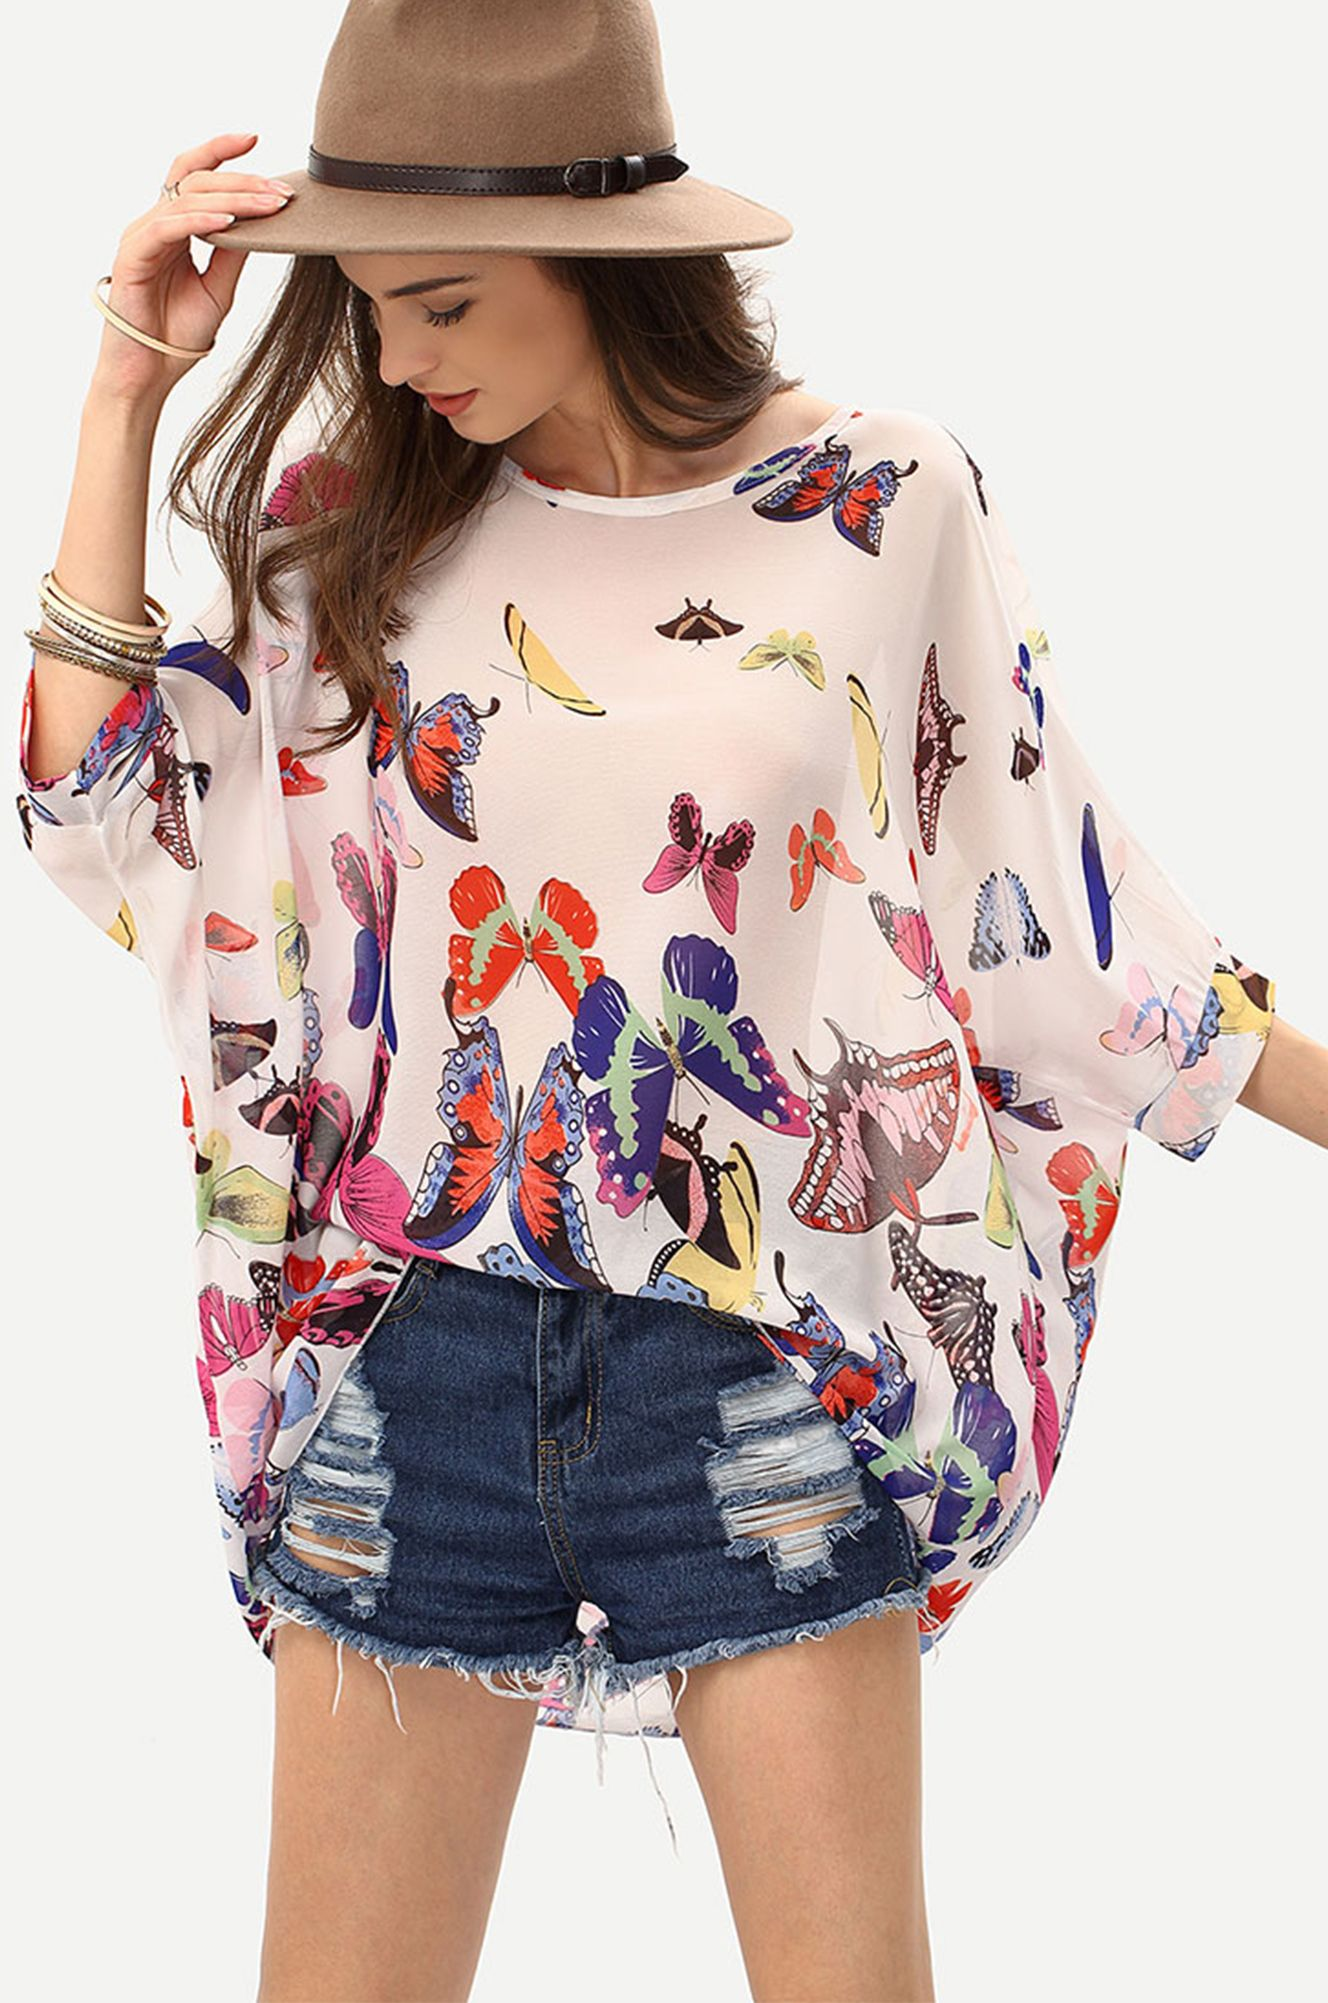 98536c6e1183c8 Floral Summer - Butterfly Print Chiffon Poncho Blouse only US$7.99 from  romwe.com